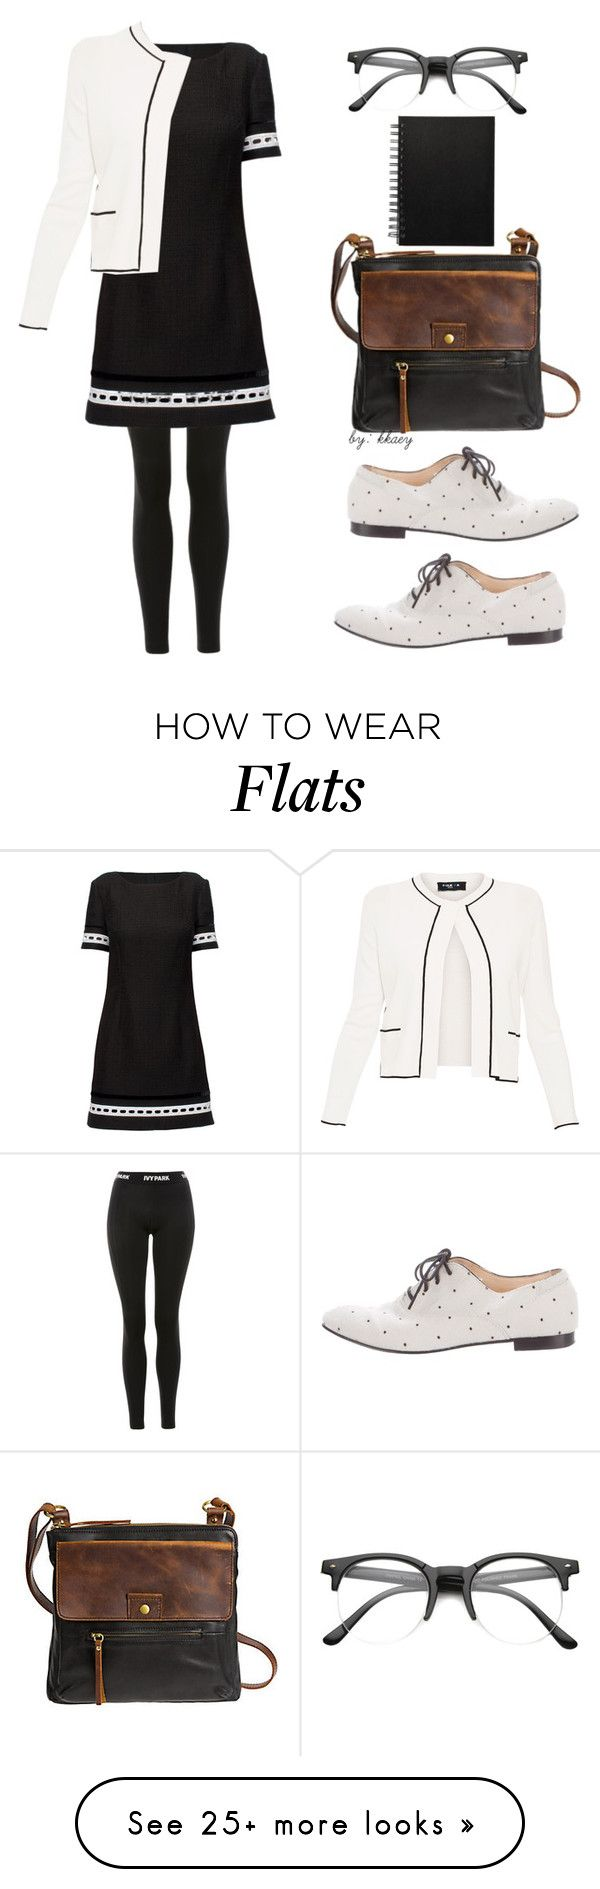 """LIBRARY CHIC #1"" by kkaey on Polyvore featuring Ivy Park, Lattori, Tod's, Overland Sheepskin Co., Paule Ka and ZeroUV"